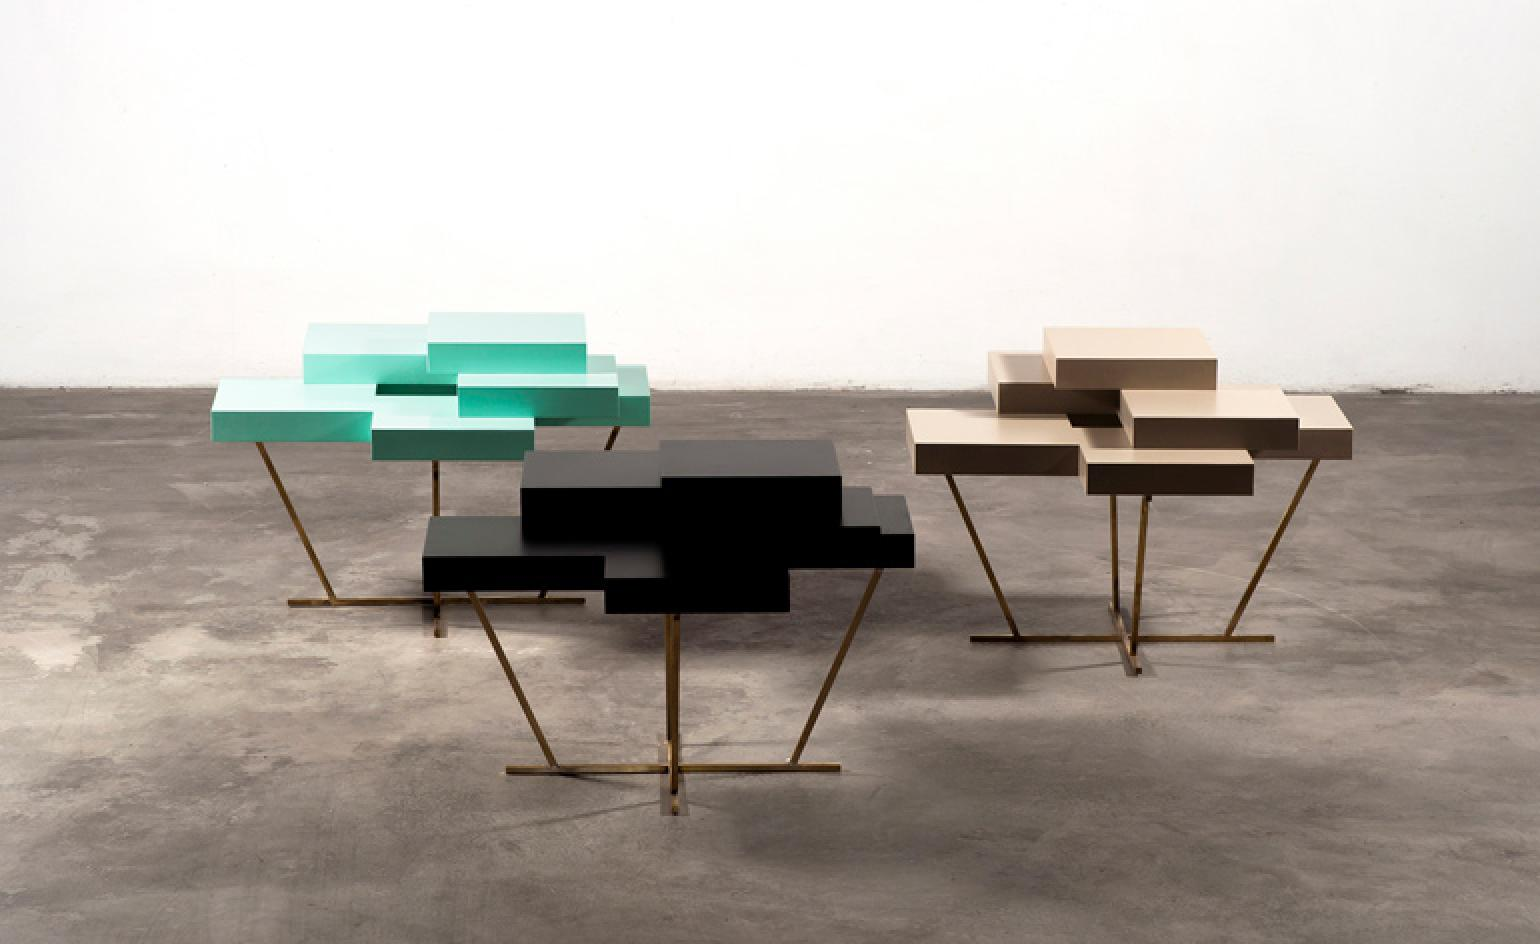 Design Days Dubai steps things up a gear for its 2014 outing